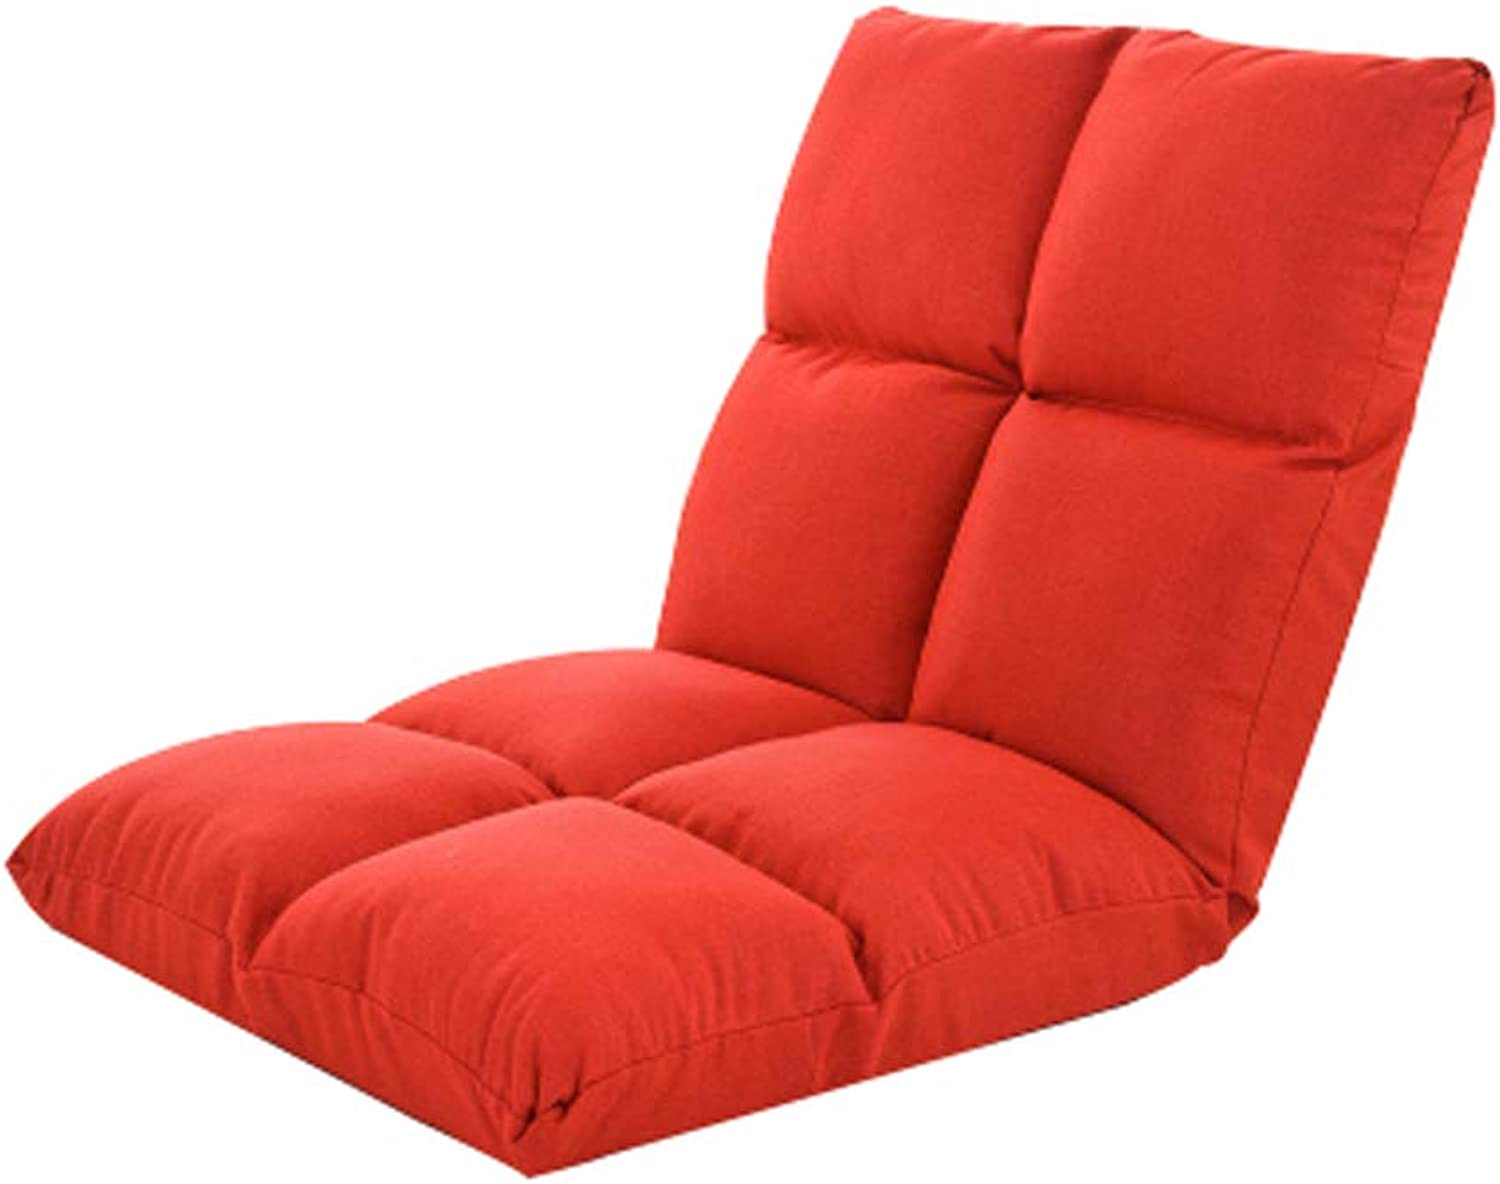 Meditation Chair, Creative Lazy Couch Chair Single Foldable Bay Window Floor Chair Leisure Recliner Bed Chair, Multi-color Optional (color   RED)